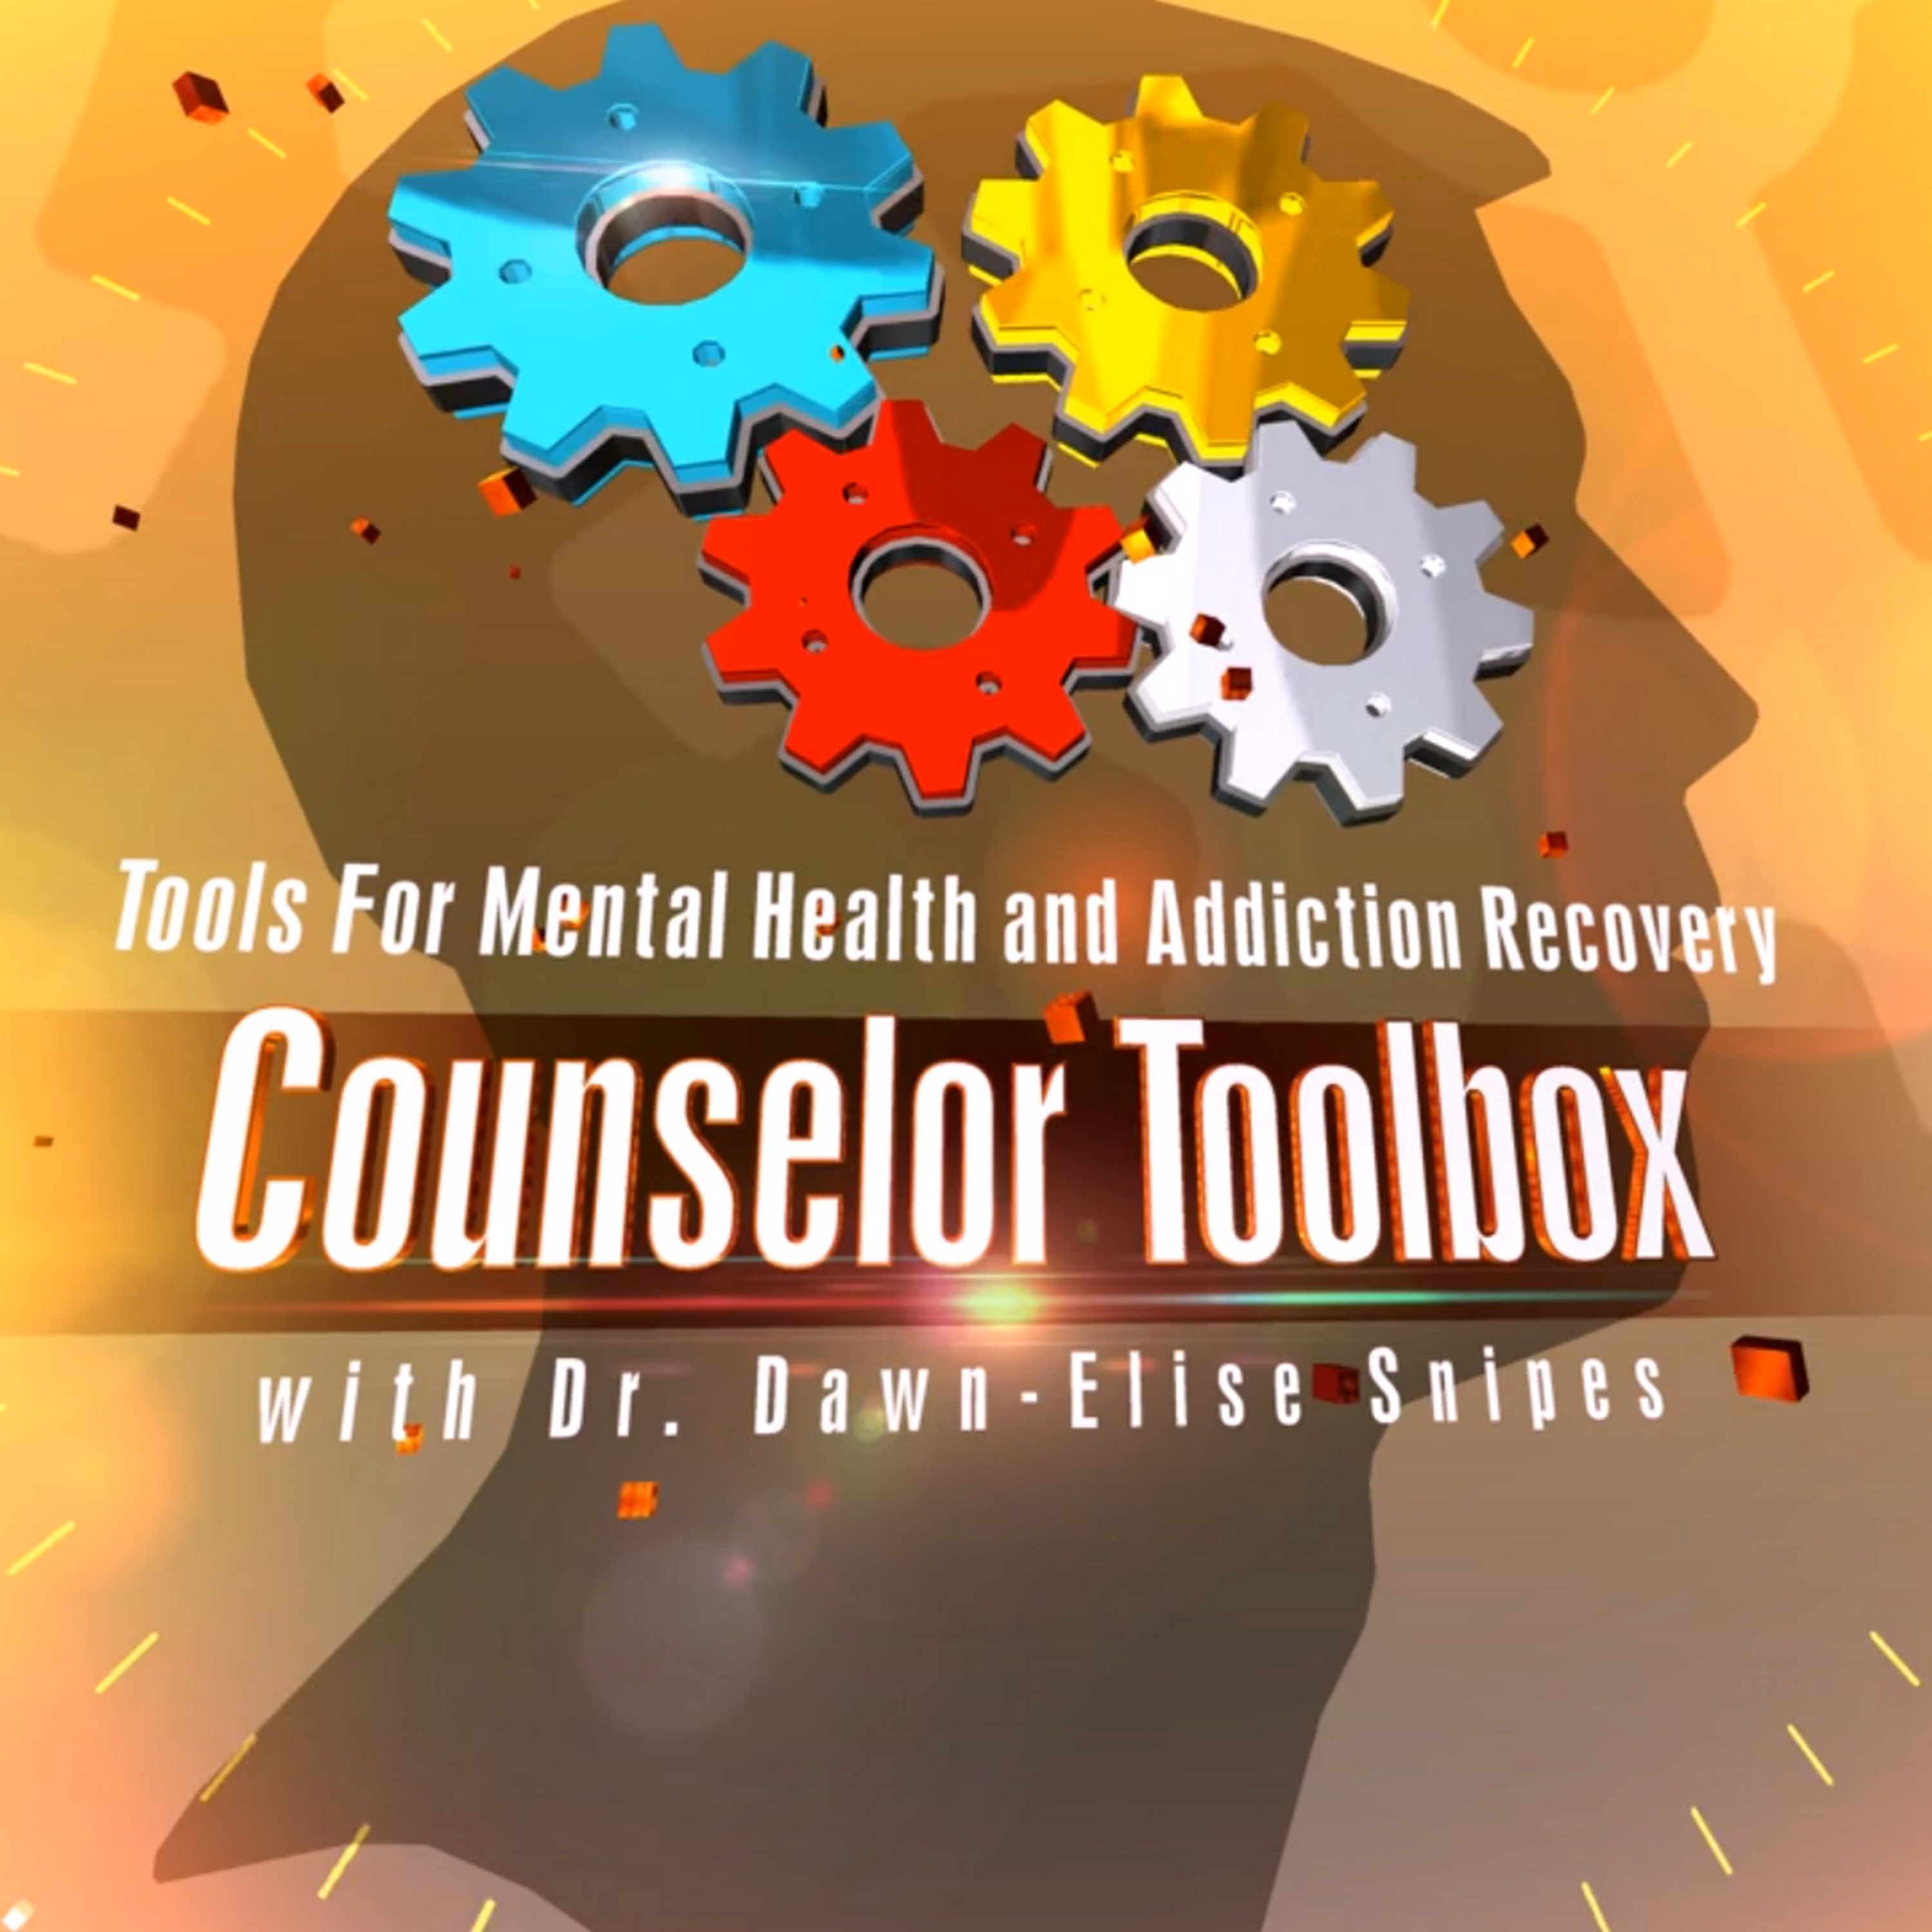 Counselor Toolbox - Addiction, Counseling, and Mental Health Continuing Education | Recovery | Relationships | Clinical | Psychology | Family | Social Work | Mindfulness | CEUs | AllCEUs | By Dr. Dawn